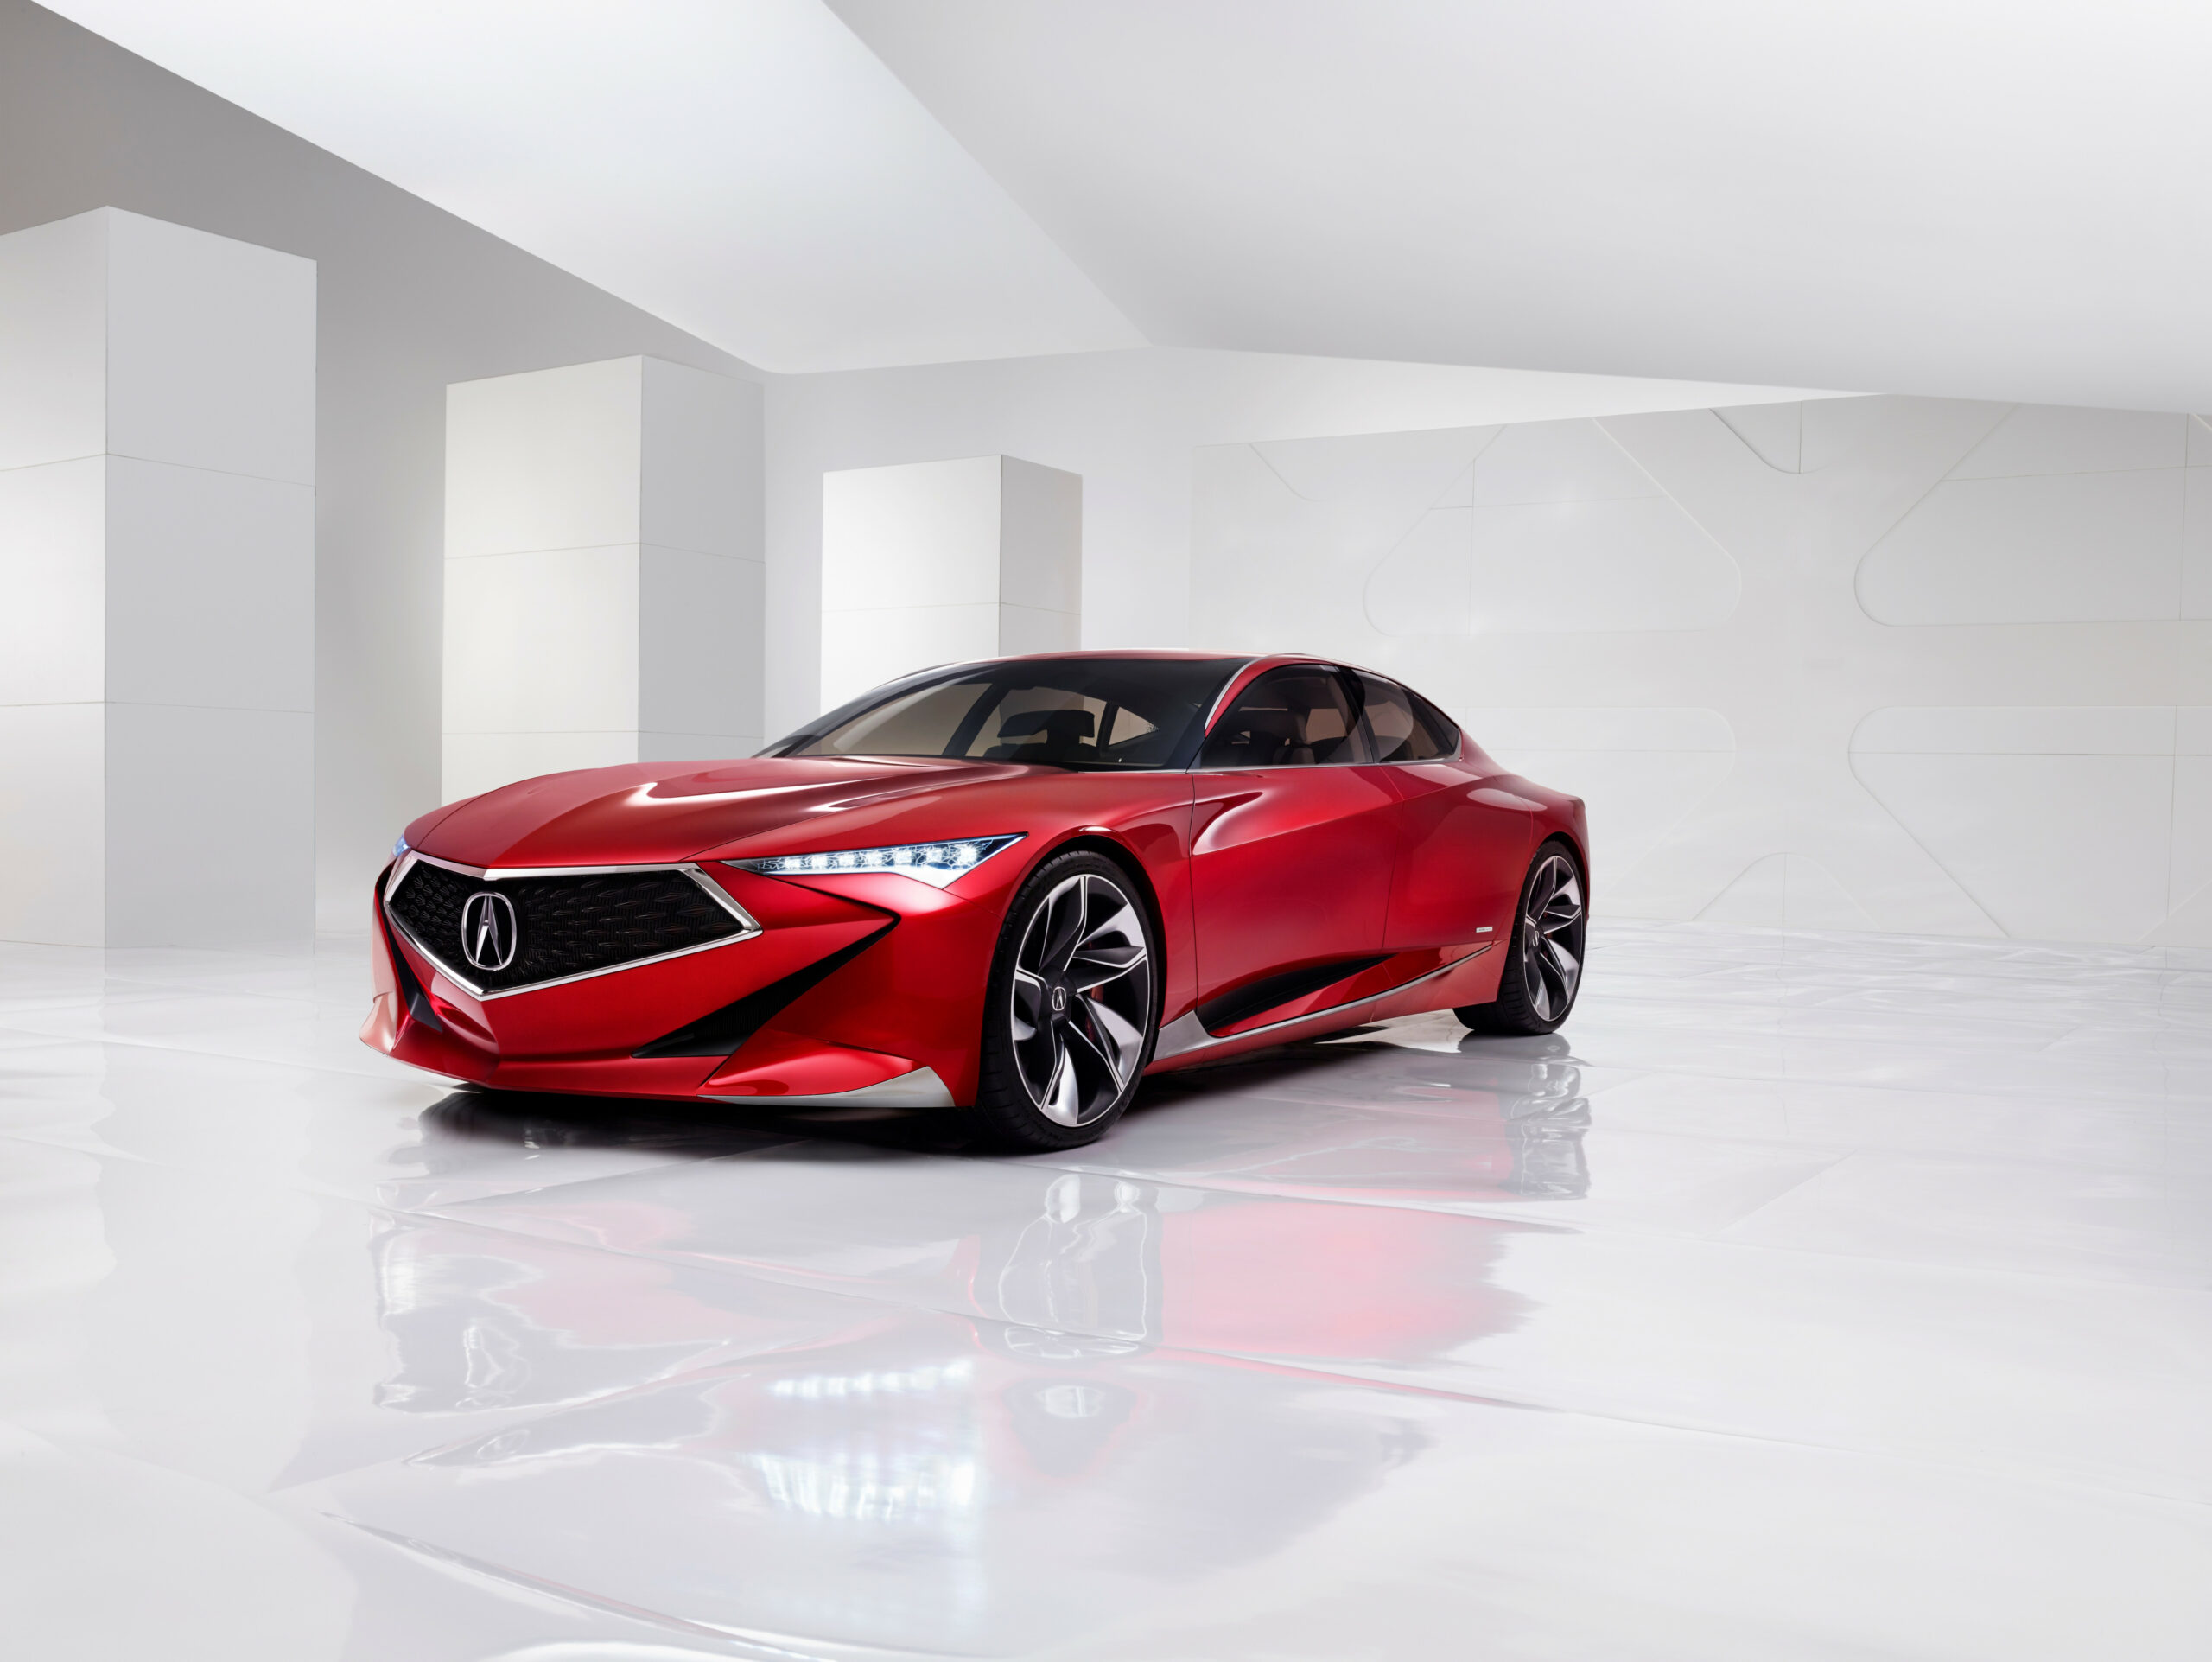 8 Acura Precision Concept News and Information, Research, and ...